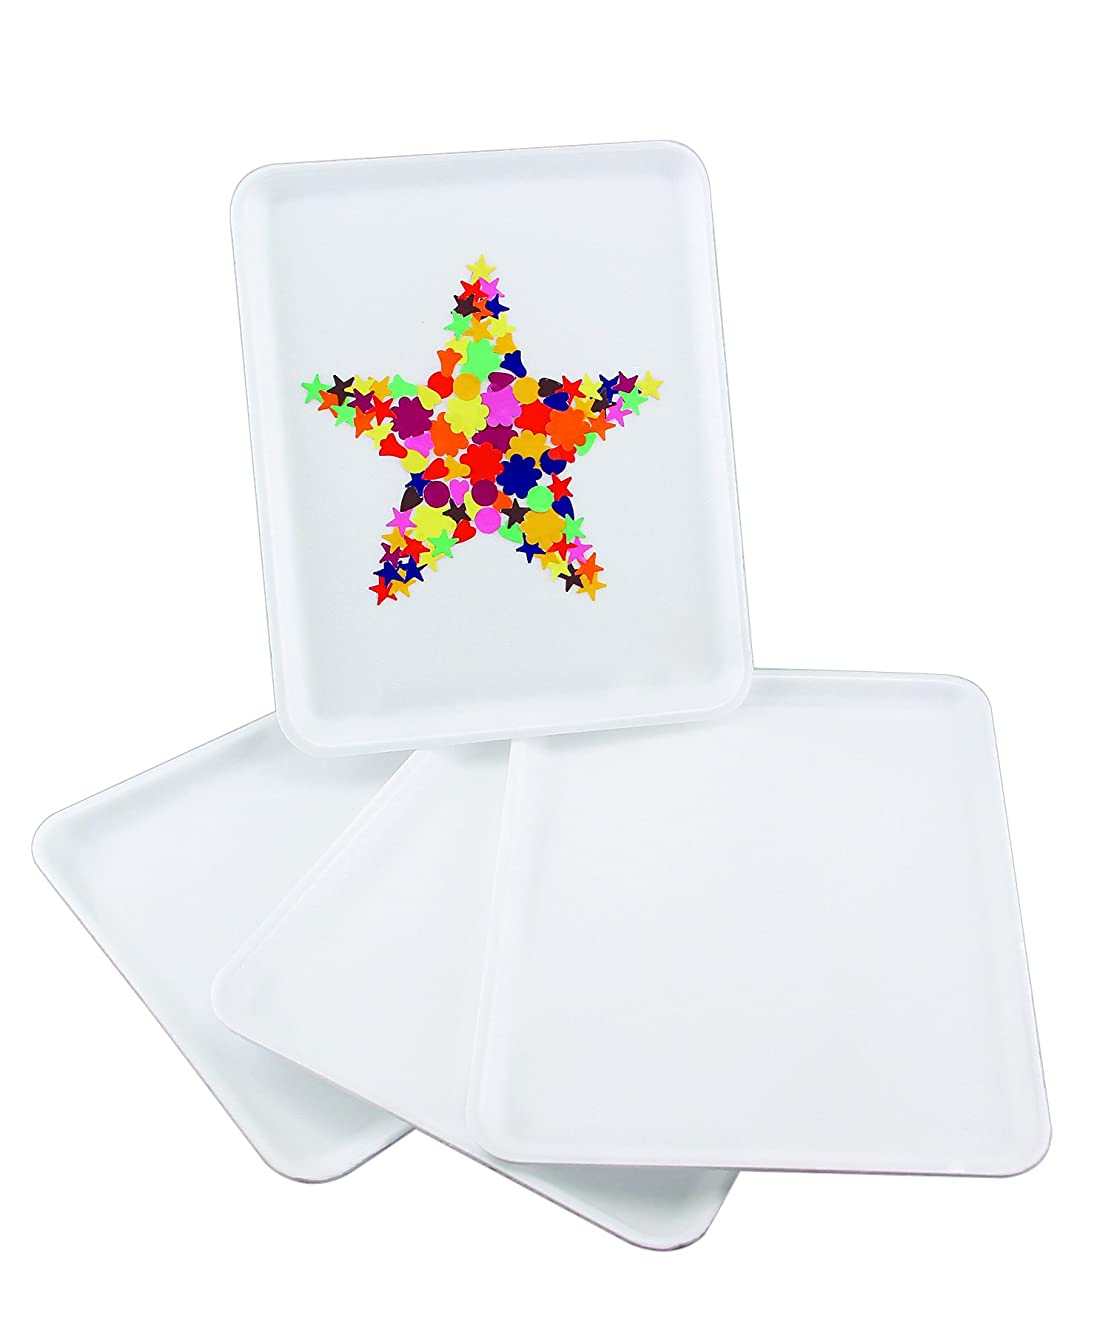 Hygloss Products Collage Foam Tray